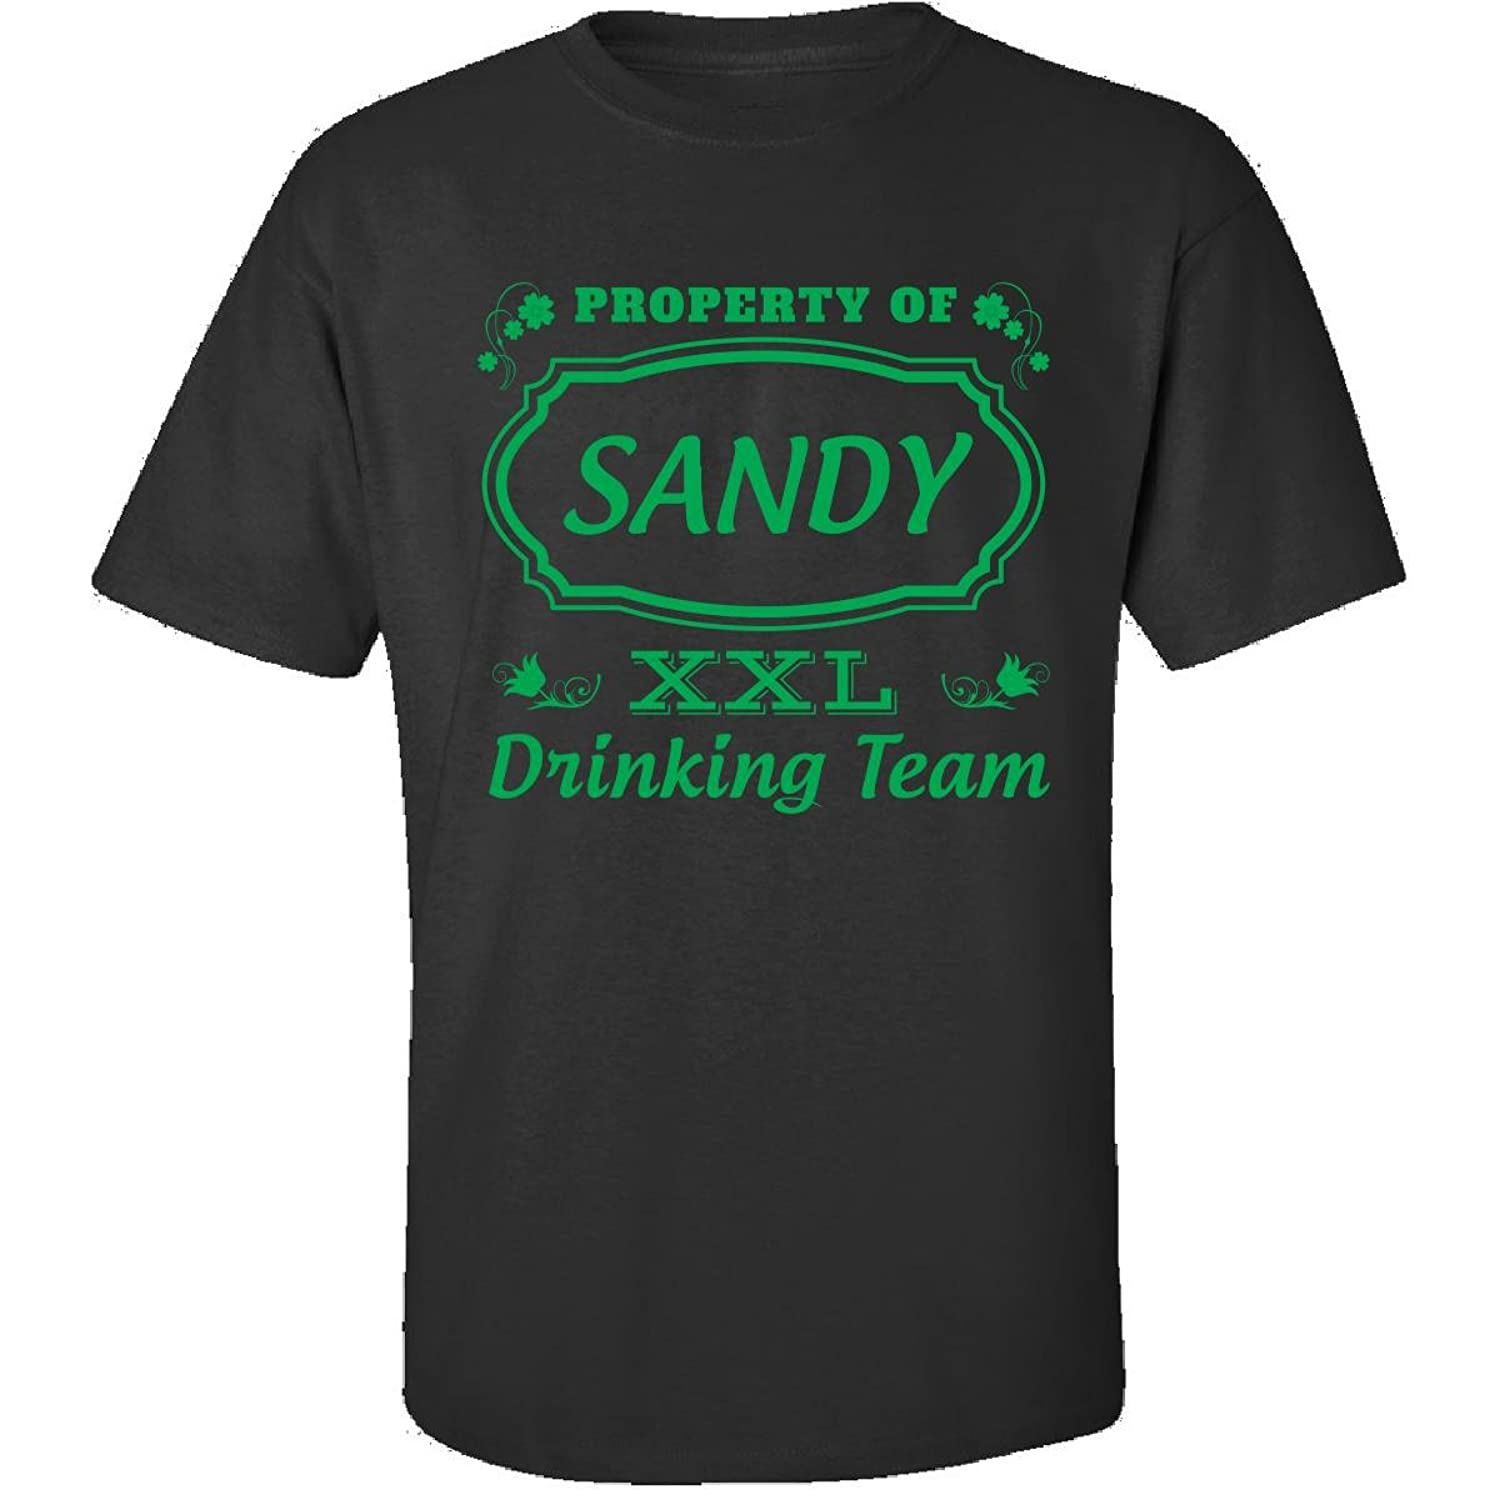 Property Of Sandy St Patrick Day Beer Drinking Team - Adult Shirt